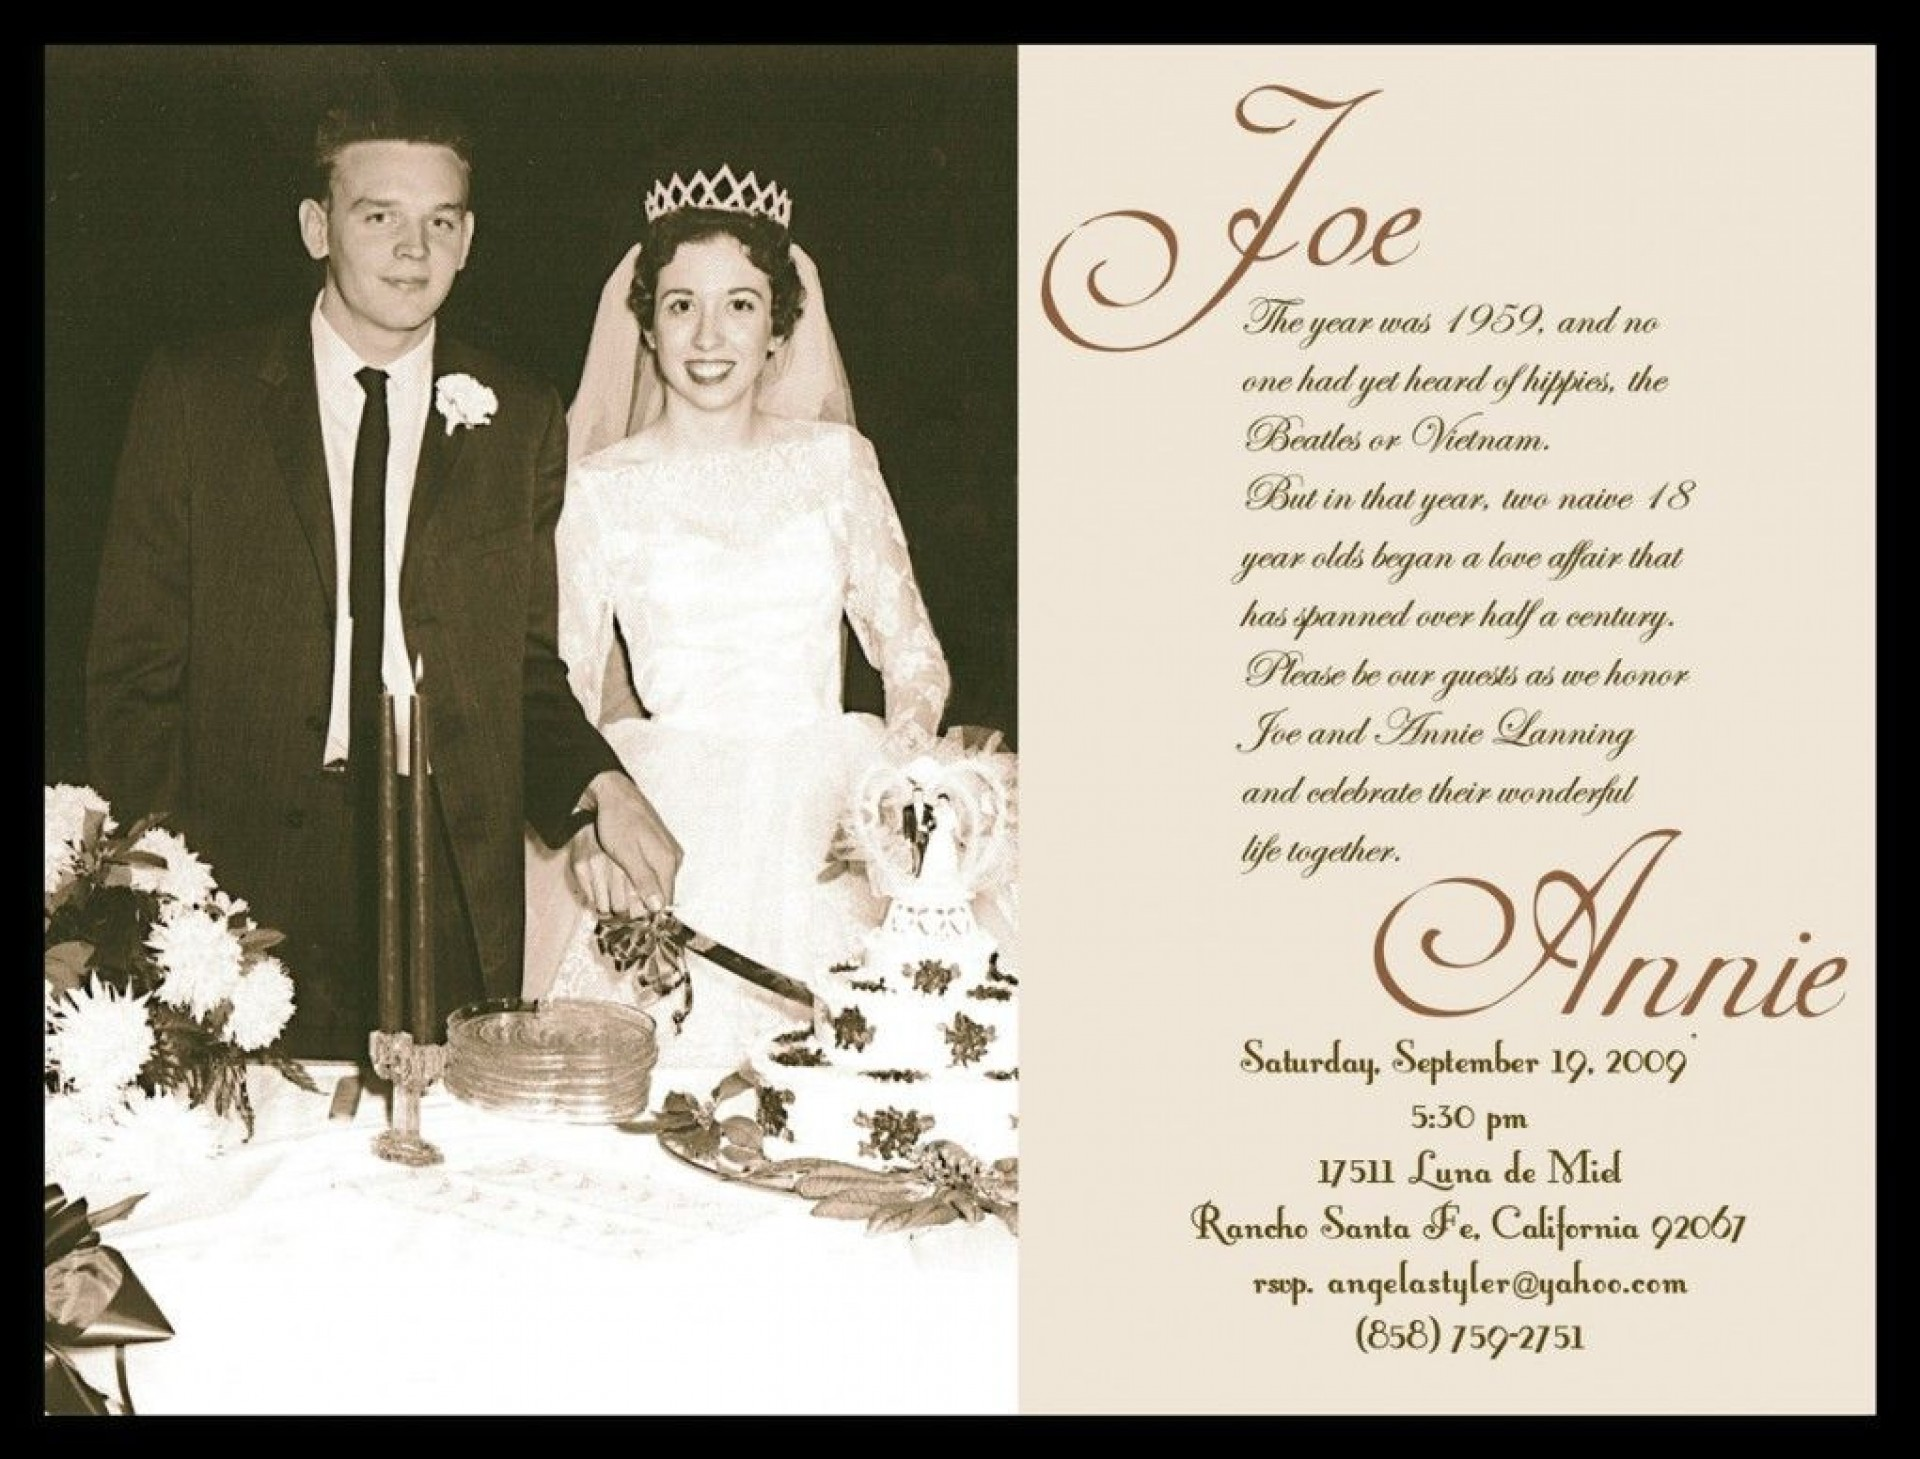 006 Outstanding 50th Wedding Anniversary Party Invitation Template Highest Quality  Templates Free1920